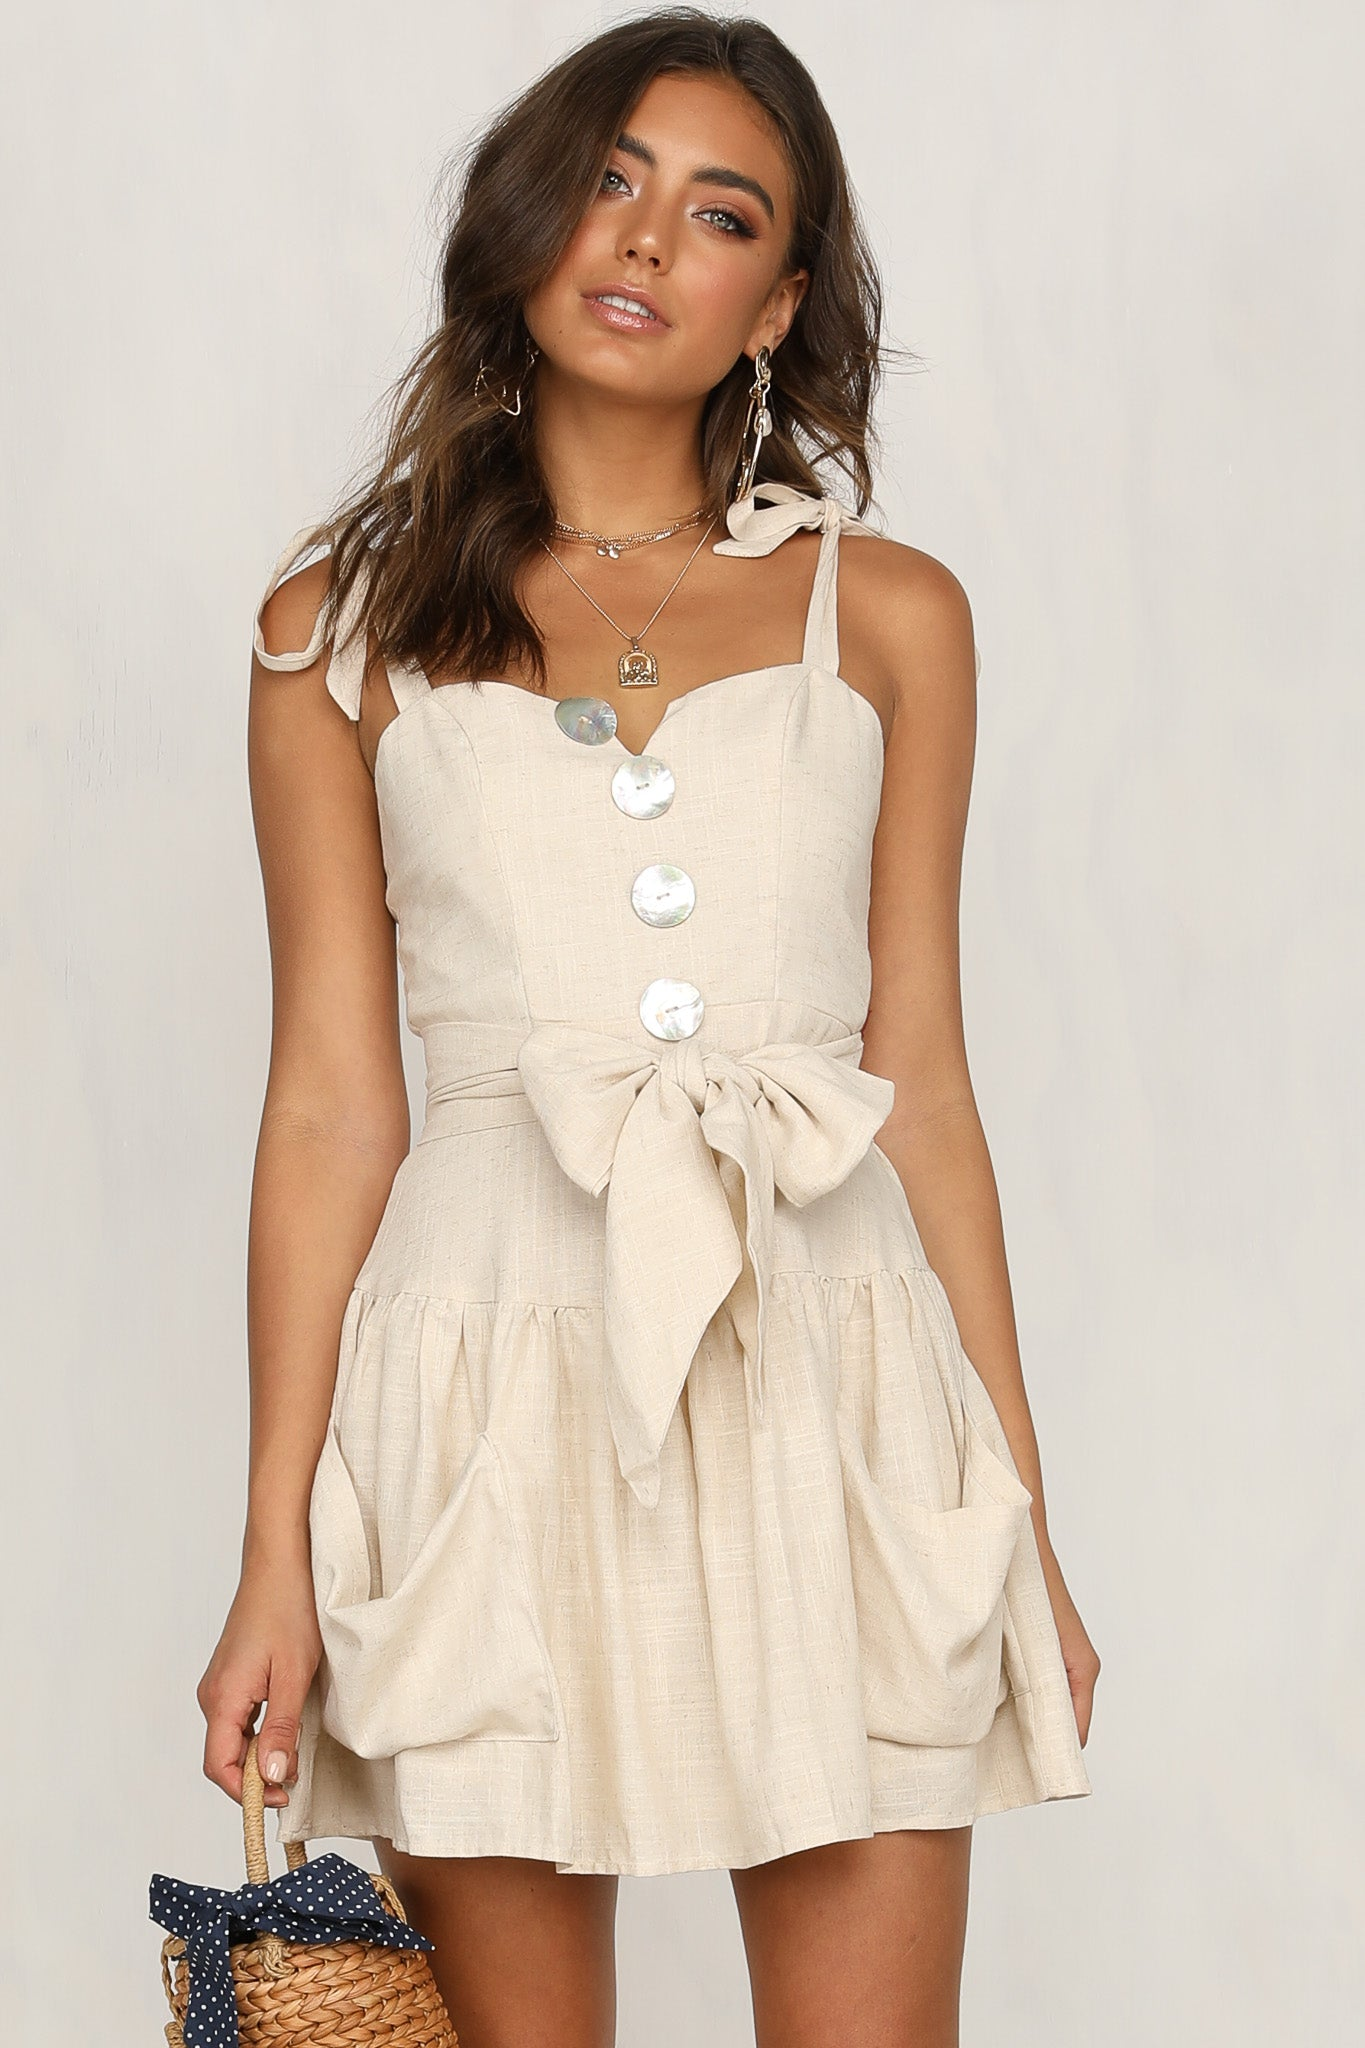 Silver Skies Dress (Beige)